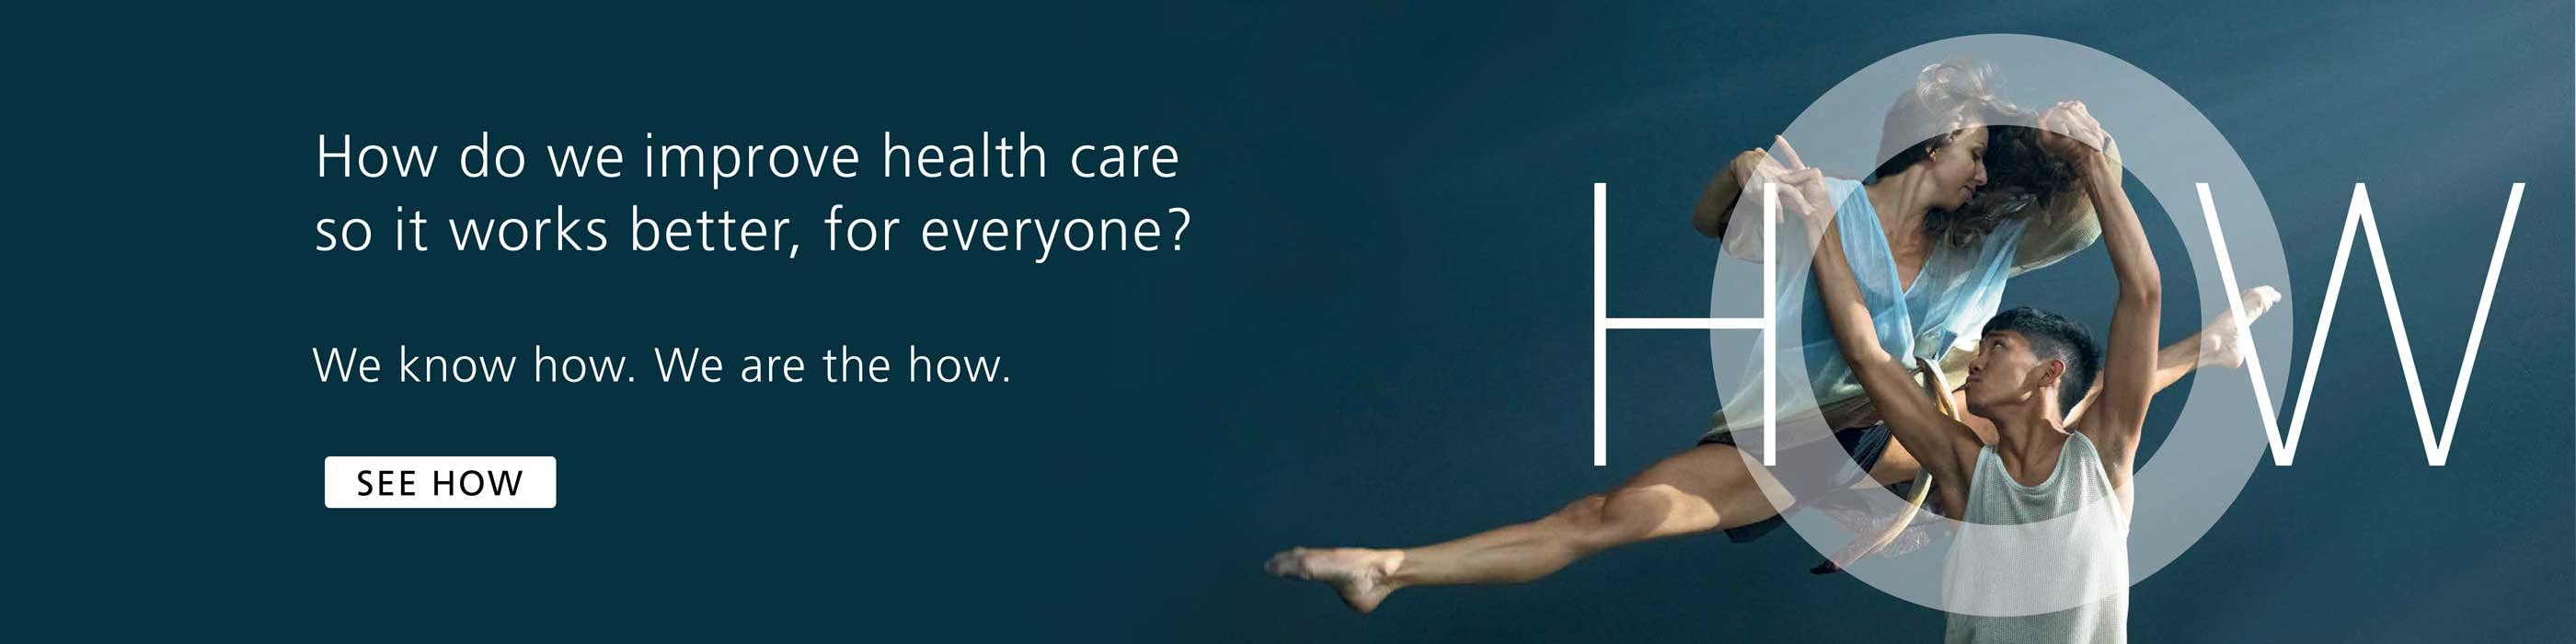 How do we improve health care so it works better, for everyone? We know how. We are the how.